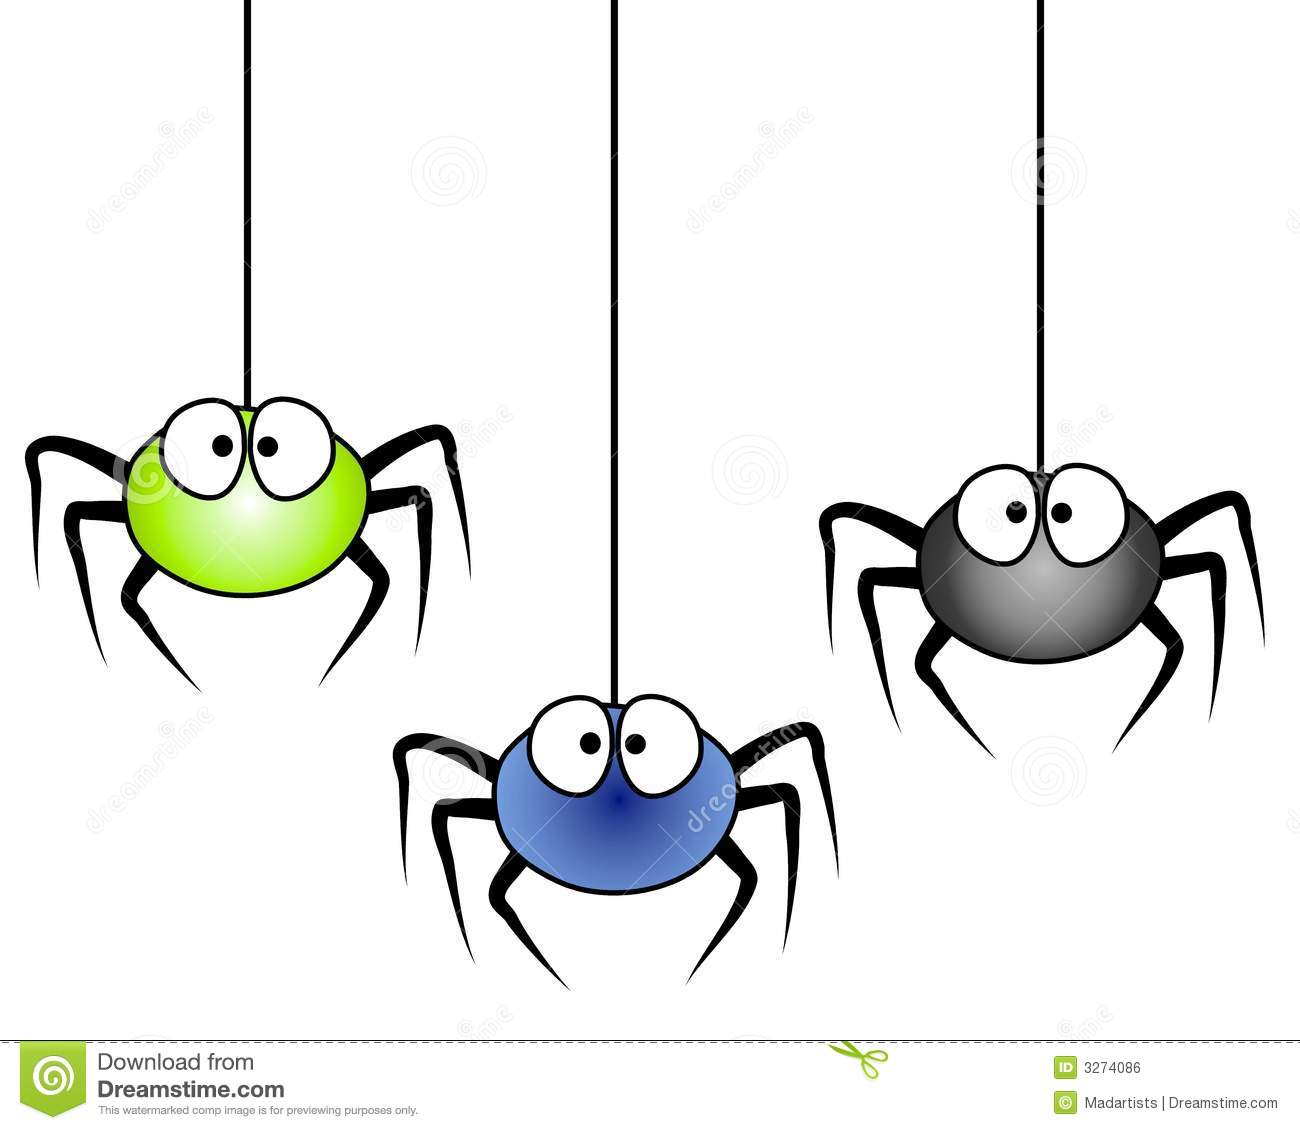 animated halloween clipart - photo #48